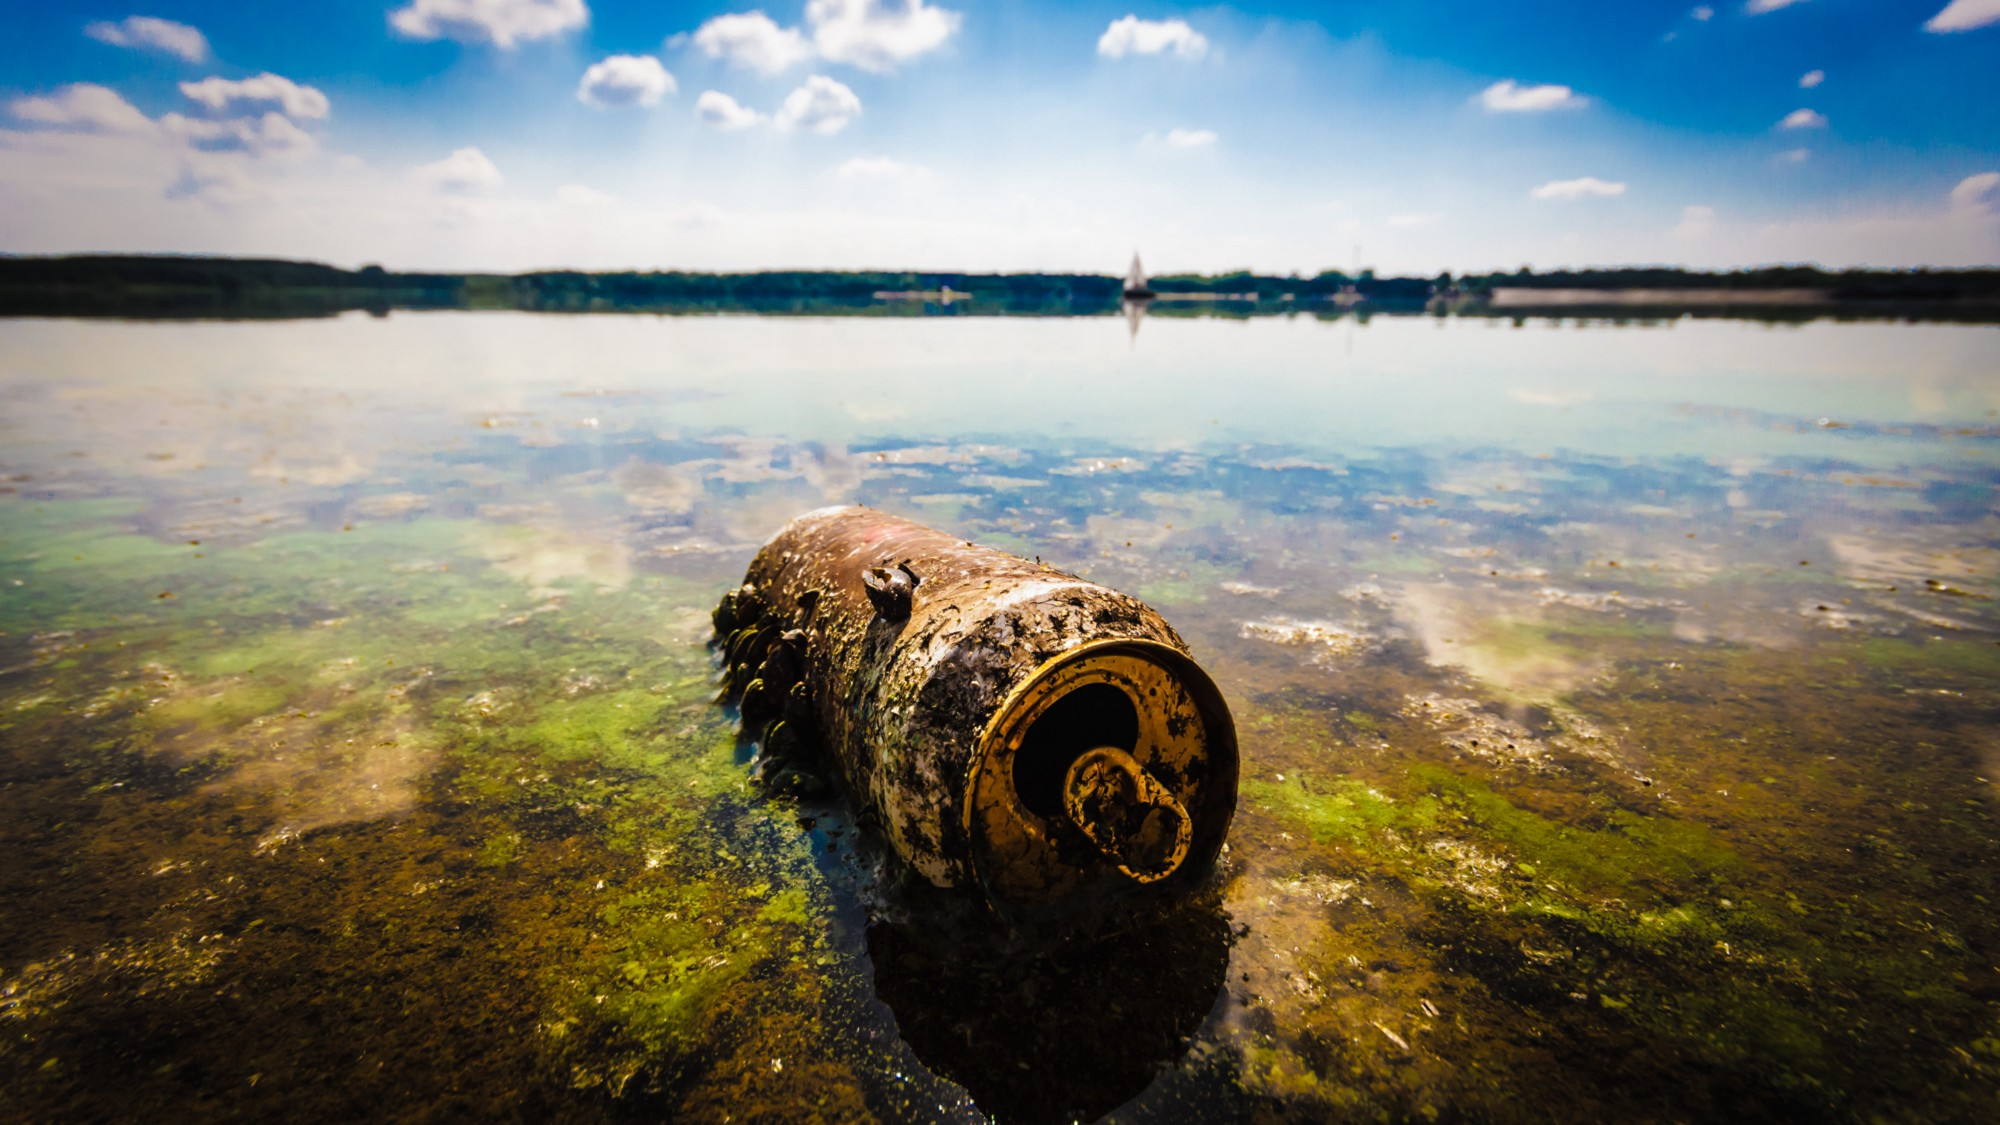 Water Pollution An Invisible And Pervasive Threat Part I